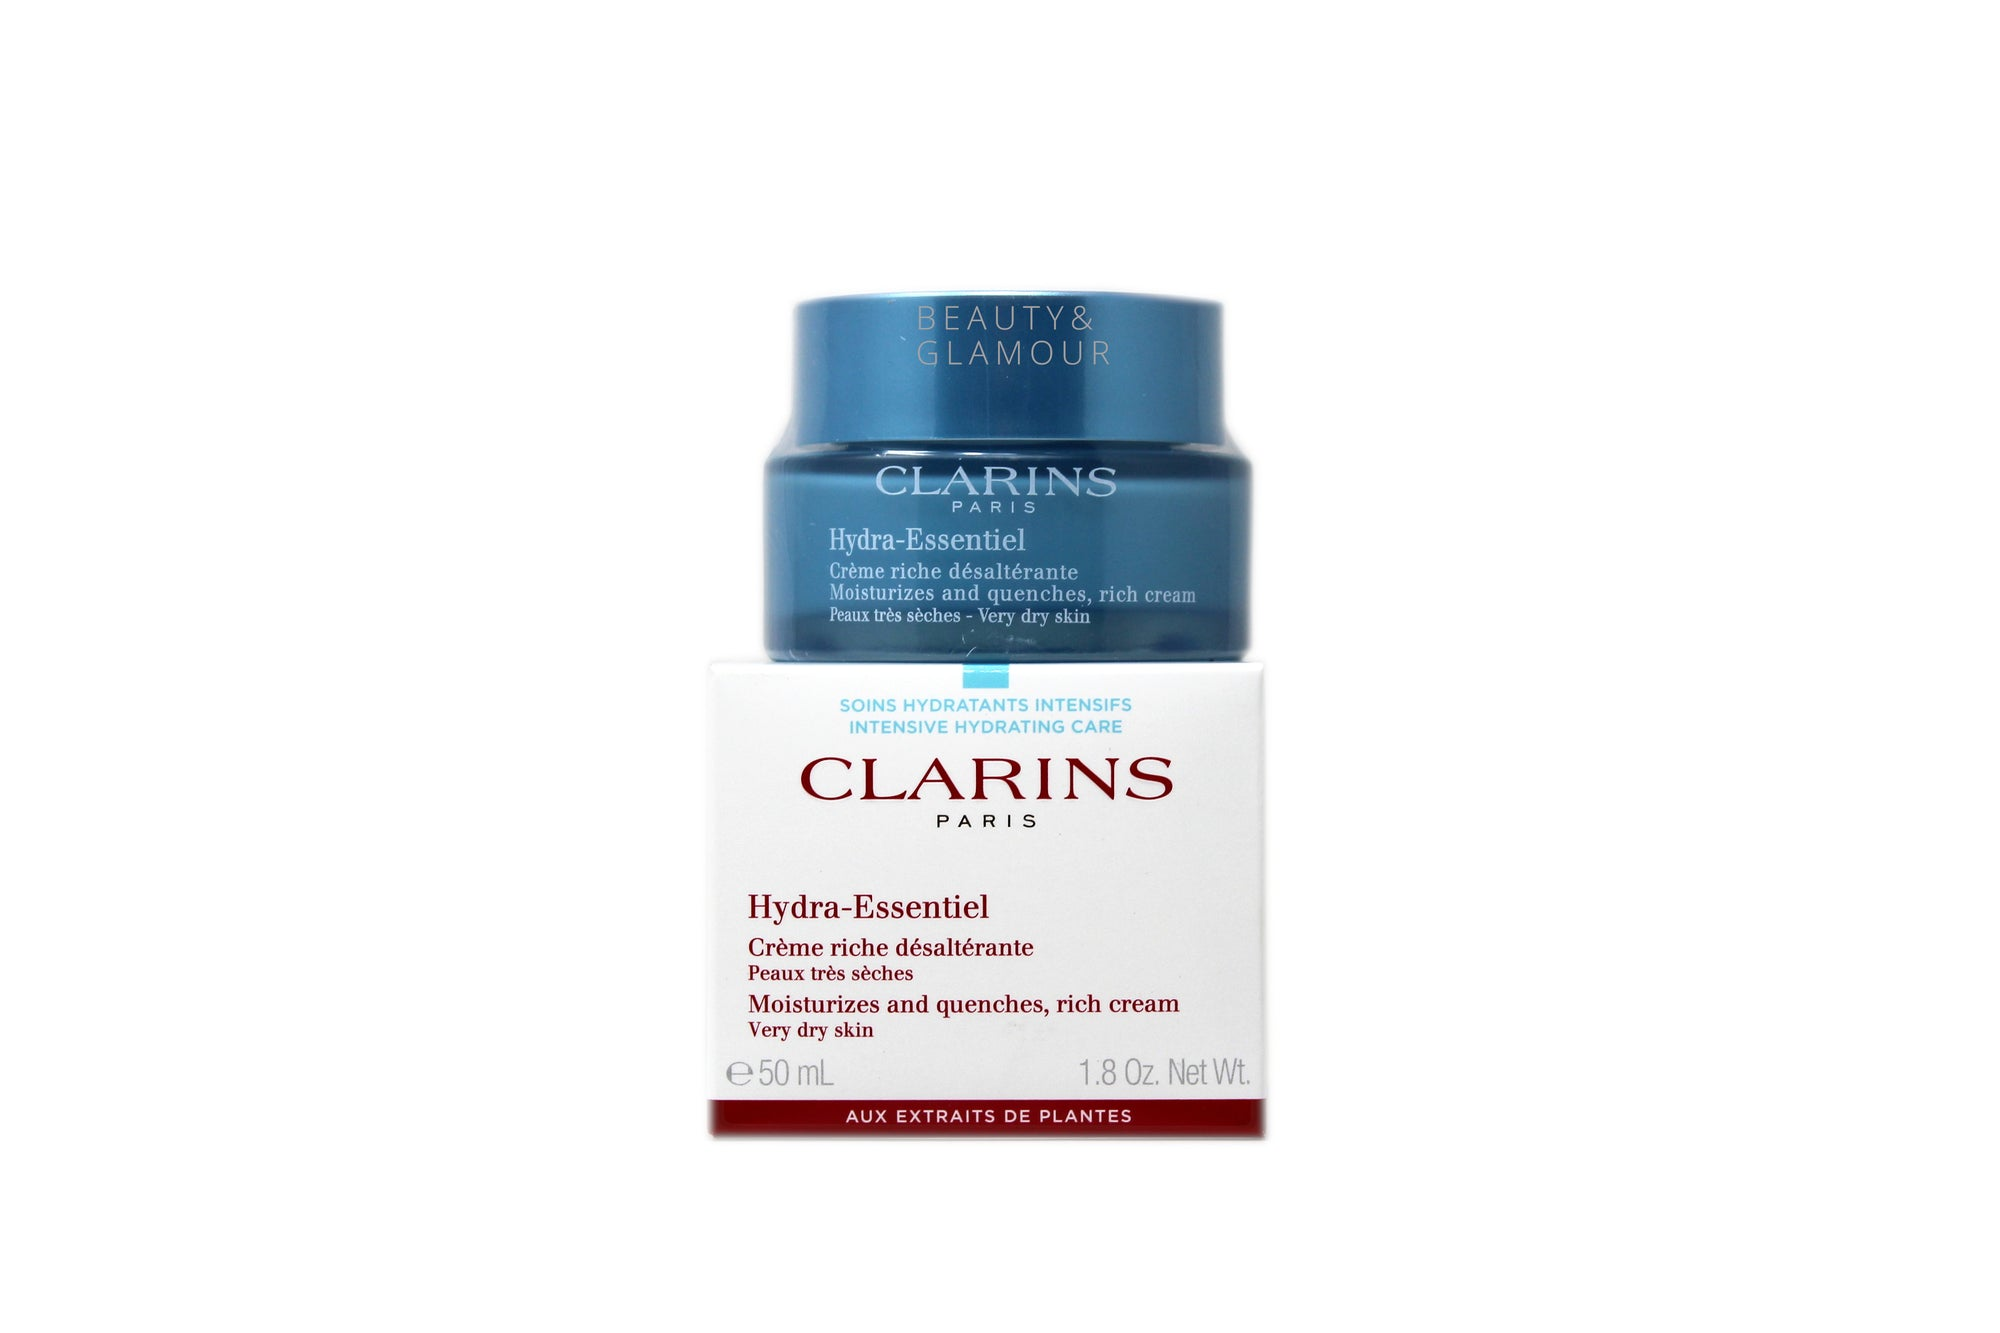 CLARINS HYDRA-ESSENTIEL RICH CREAM FOR VERY DRY SKIN